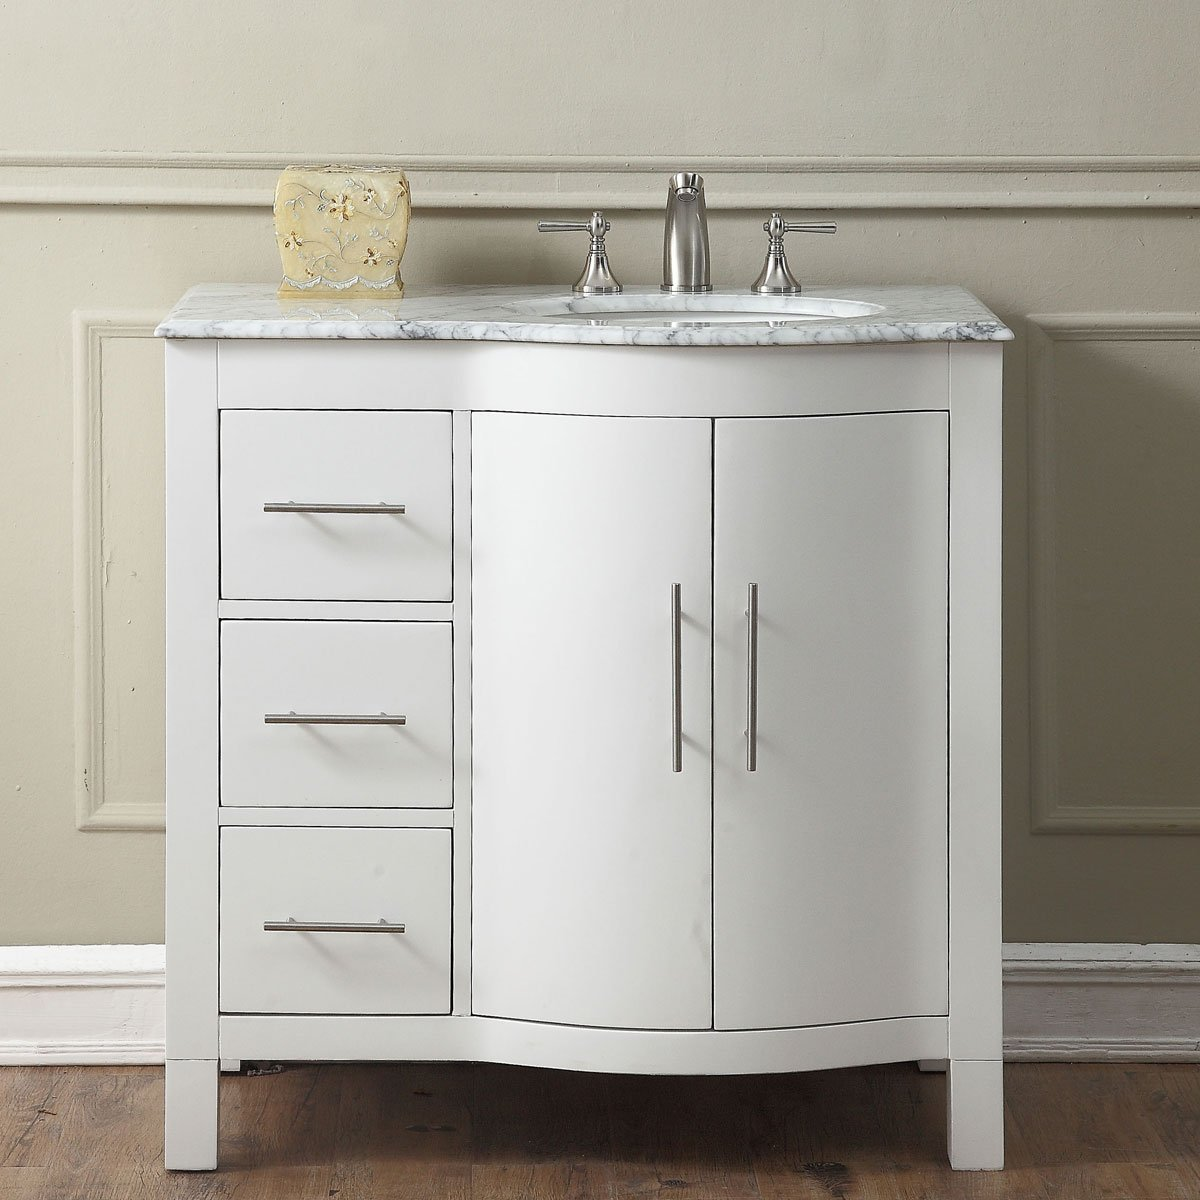 36 Inch Single Sink Contemporary Bathroom Vanity Cabinet In White Finish Carrara White Marble